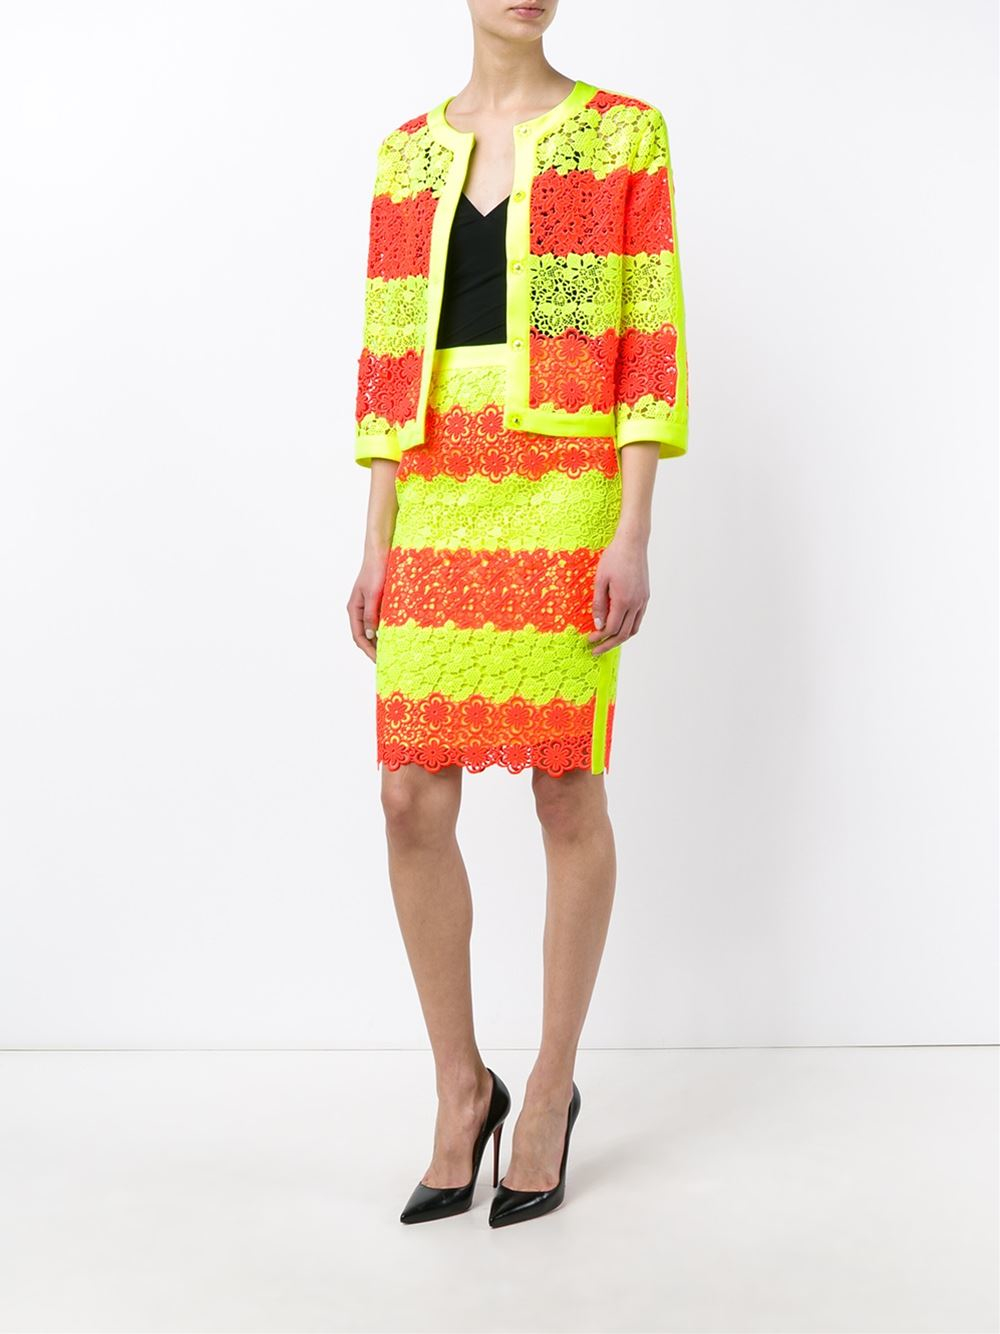 moschino floral neon lace pencil skirt in yellow